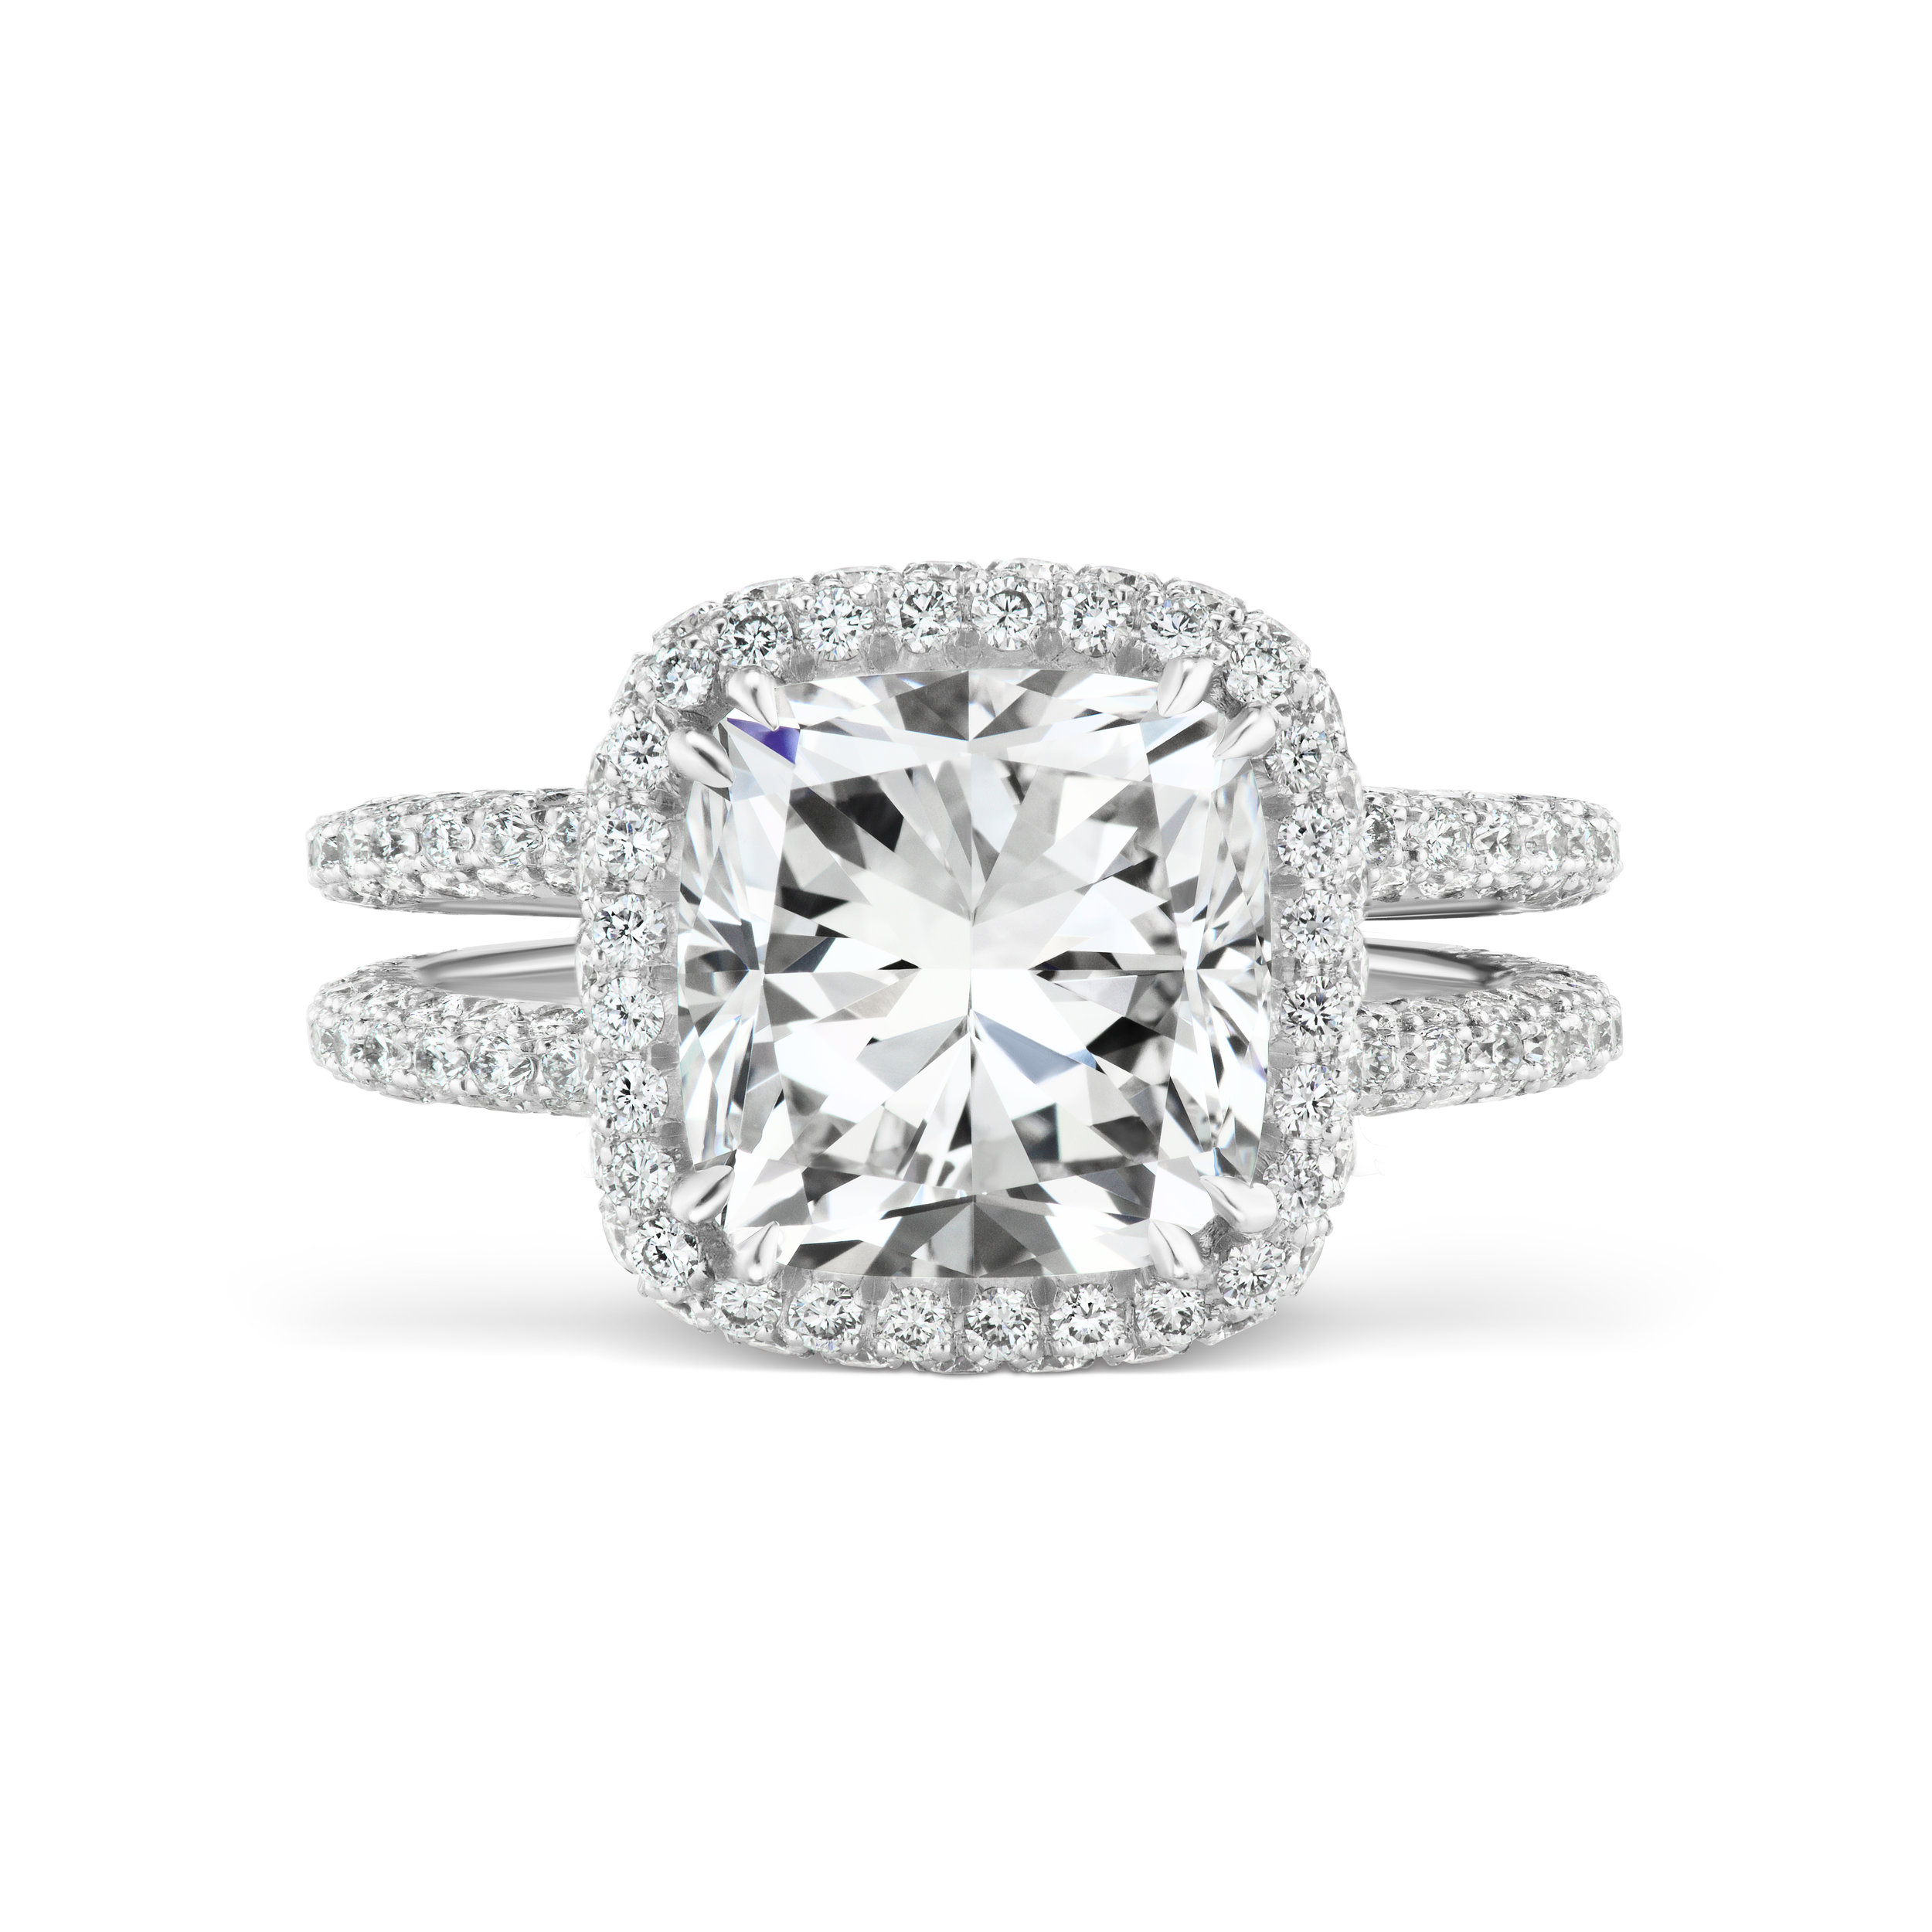 Cushion cut diamond ring with micropavé diamond double band, mounted in platinum.